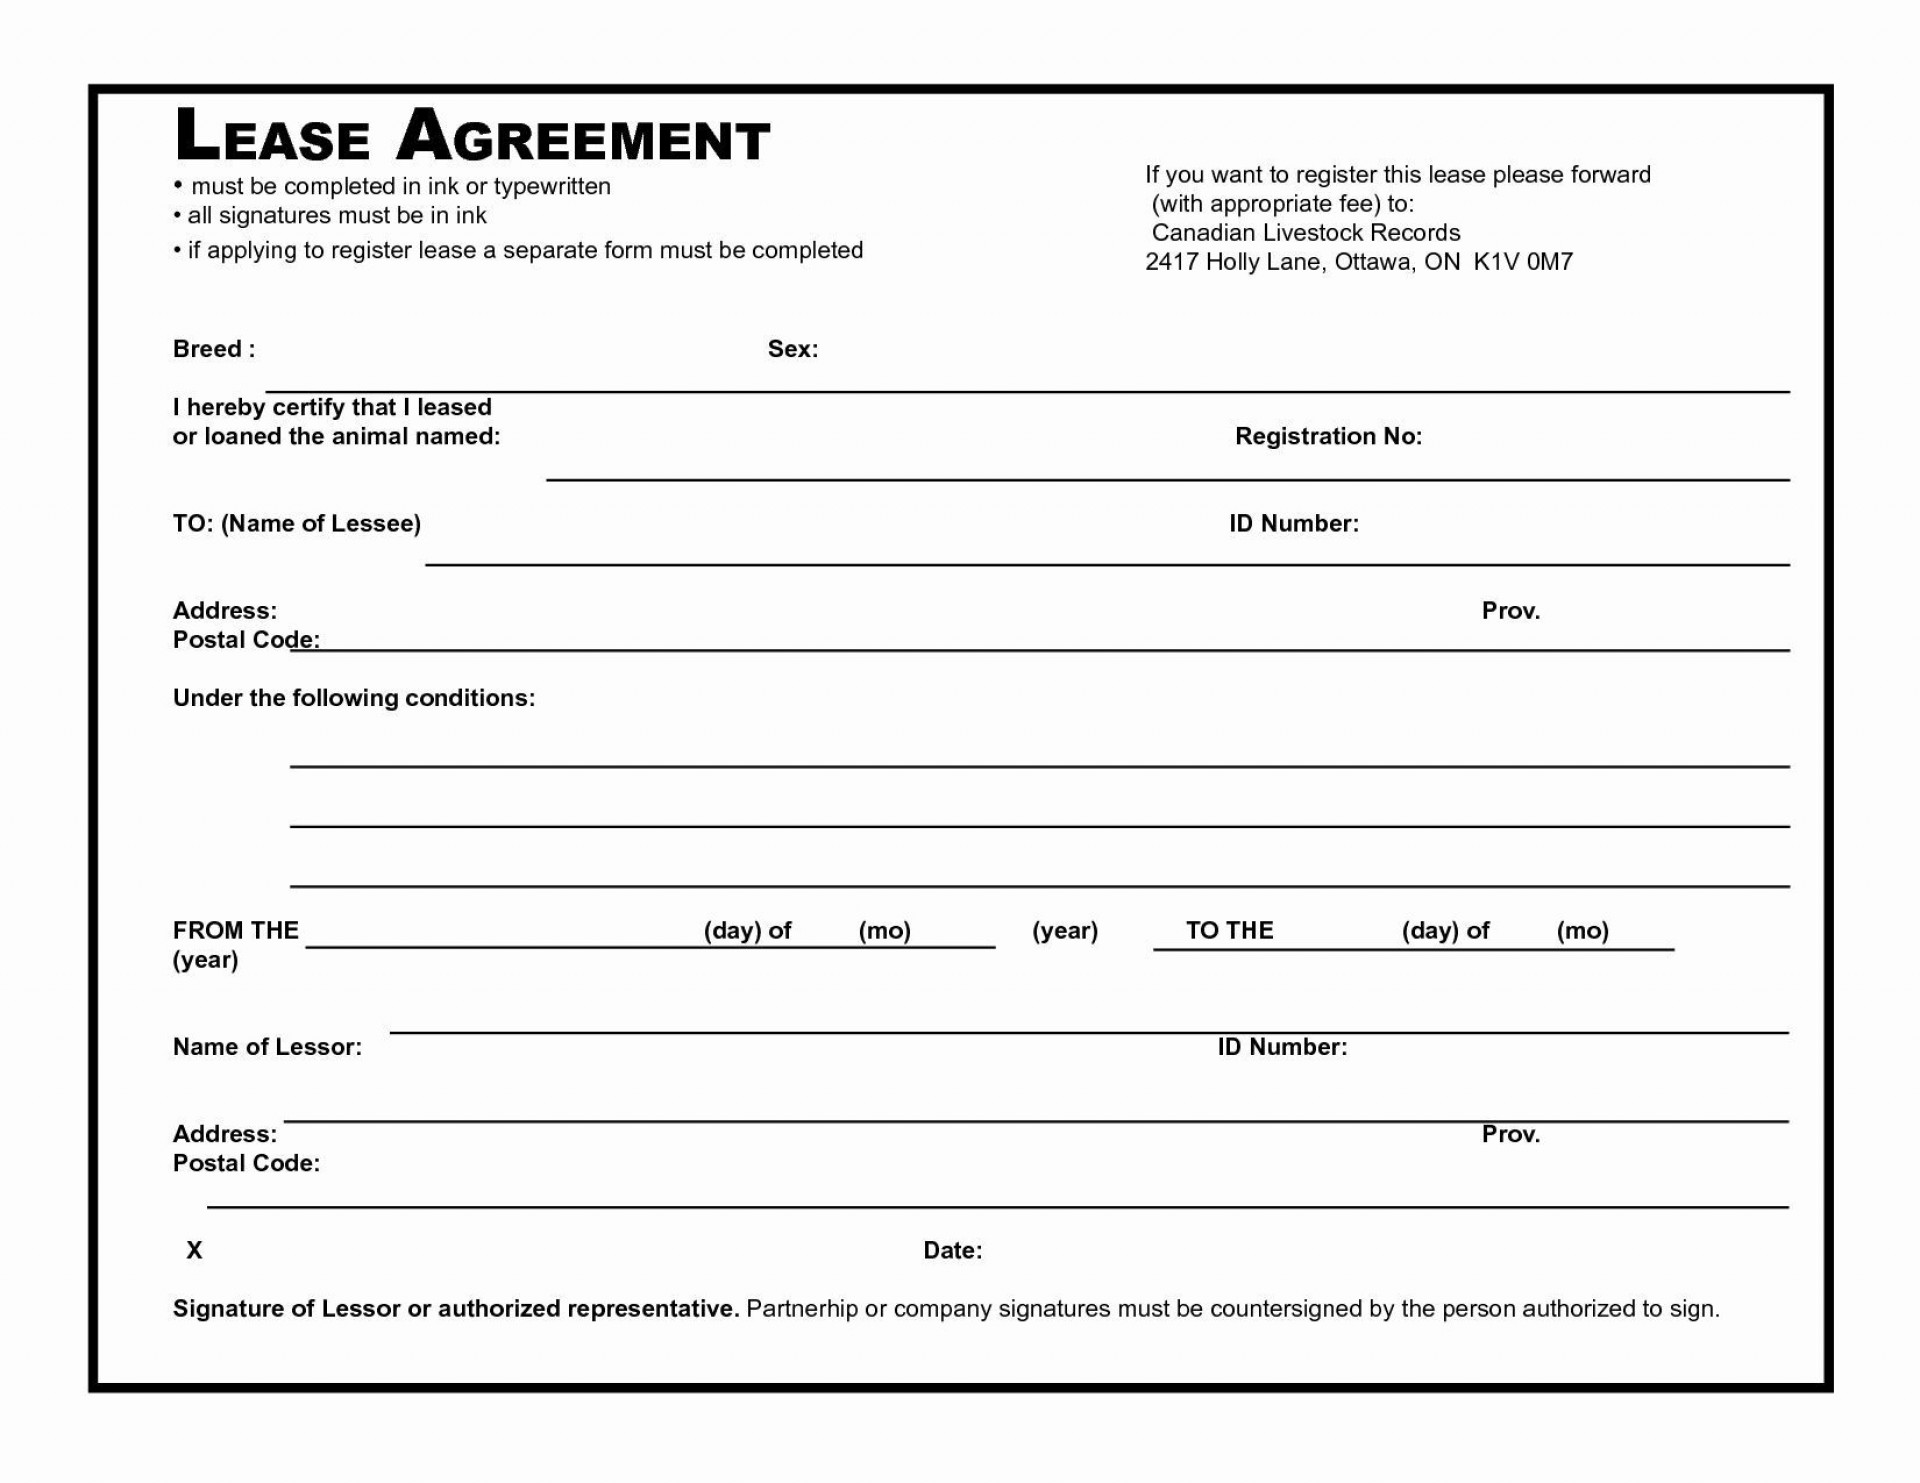 001 Marvelou Free Sublease Agreement Template South Africa Highest Quality  Simple Residential Lease Word Download1920